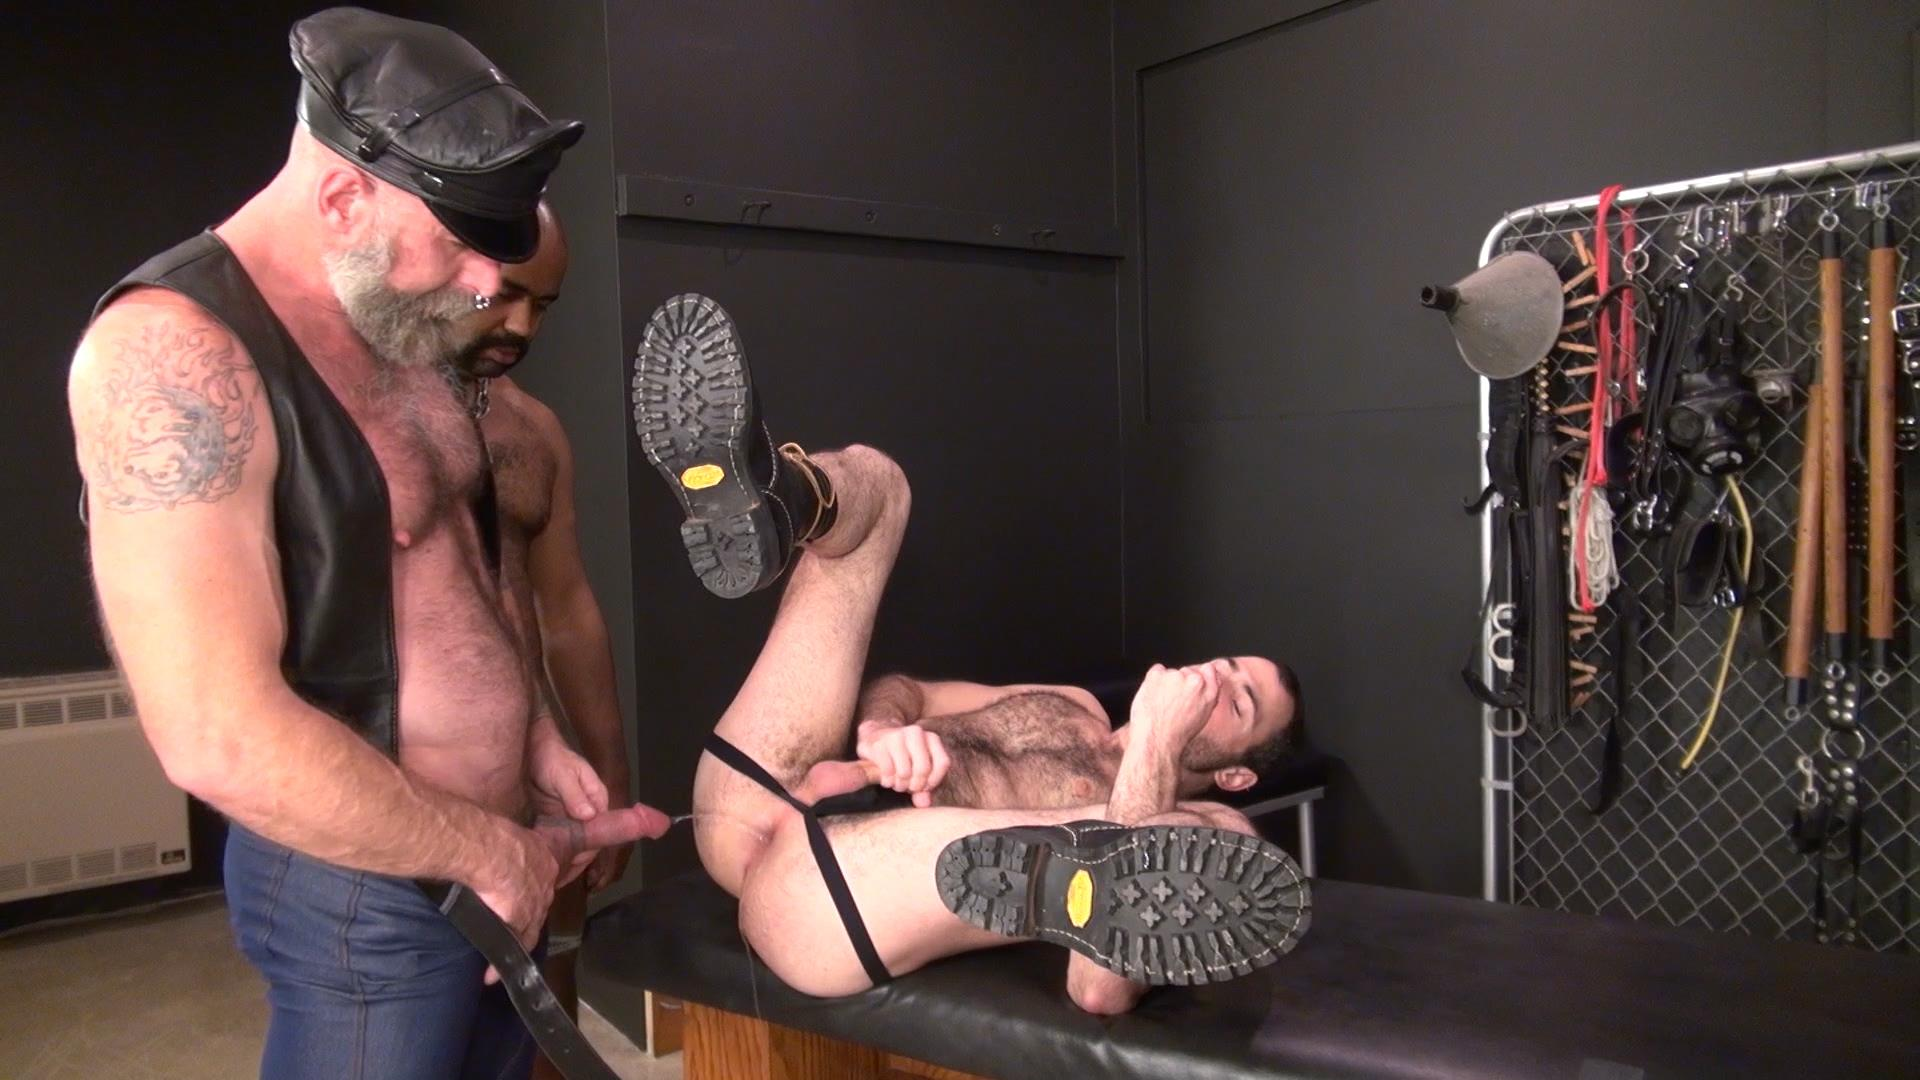 Raw-and-Rough-Jake-Wetmore-and-Dusty-Williams-and-Kid-Satyr-Bareback-Taking-Raw-Daddy-Loads-Cum-Amateur-Gay-Porn-11 Hairy Pup Taking Raw Interracial Daddy Loads Bareback